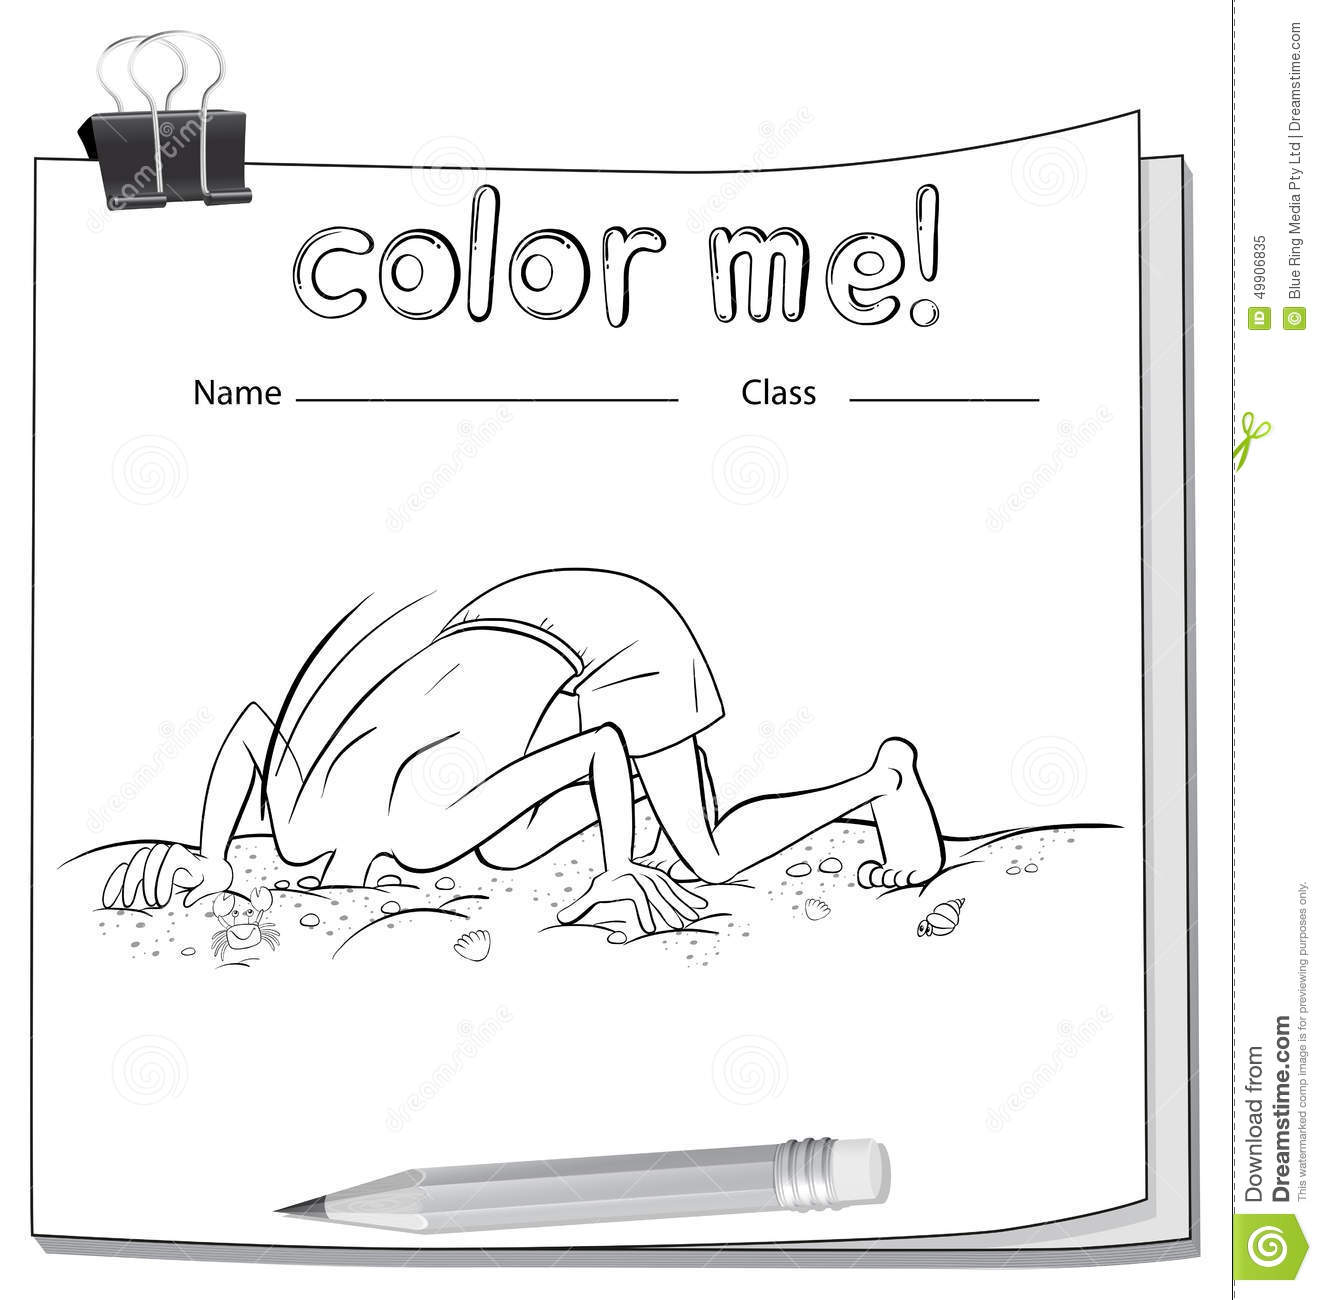 A Color Me Worksheet With A Boy And A Pencil Stock Vector